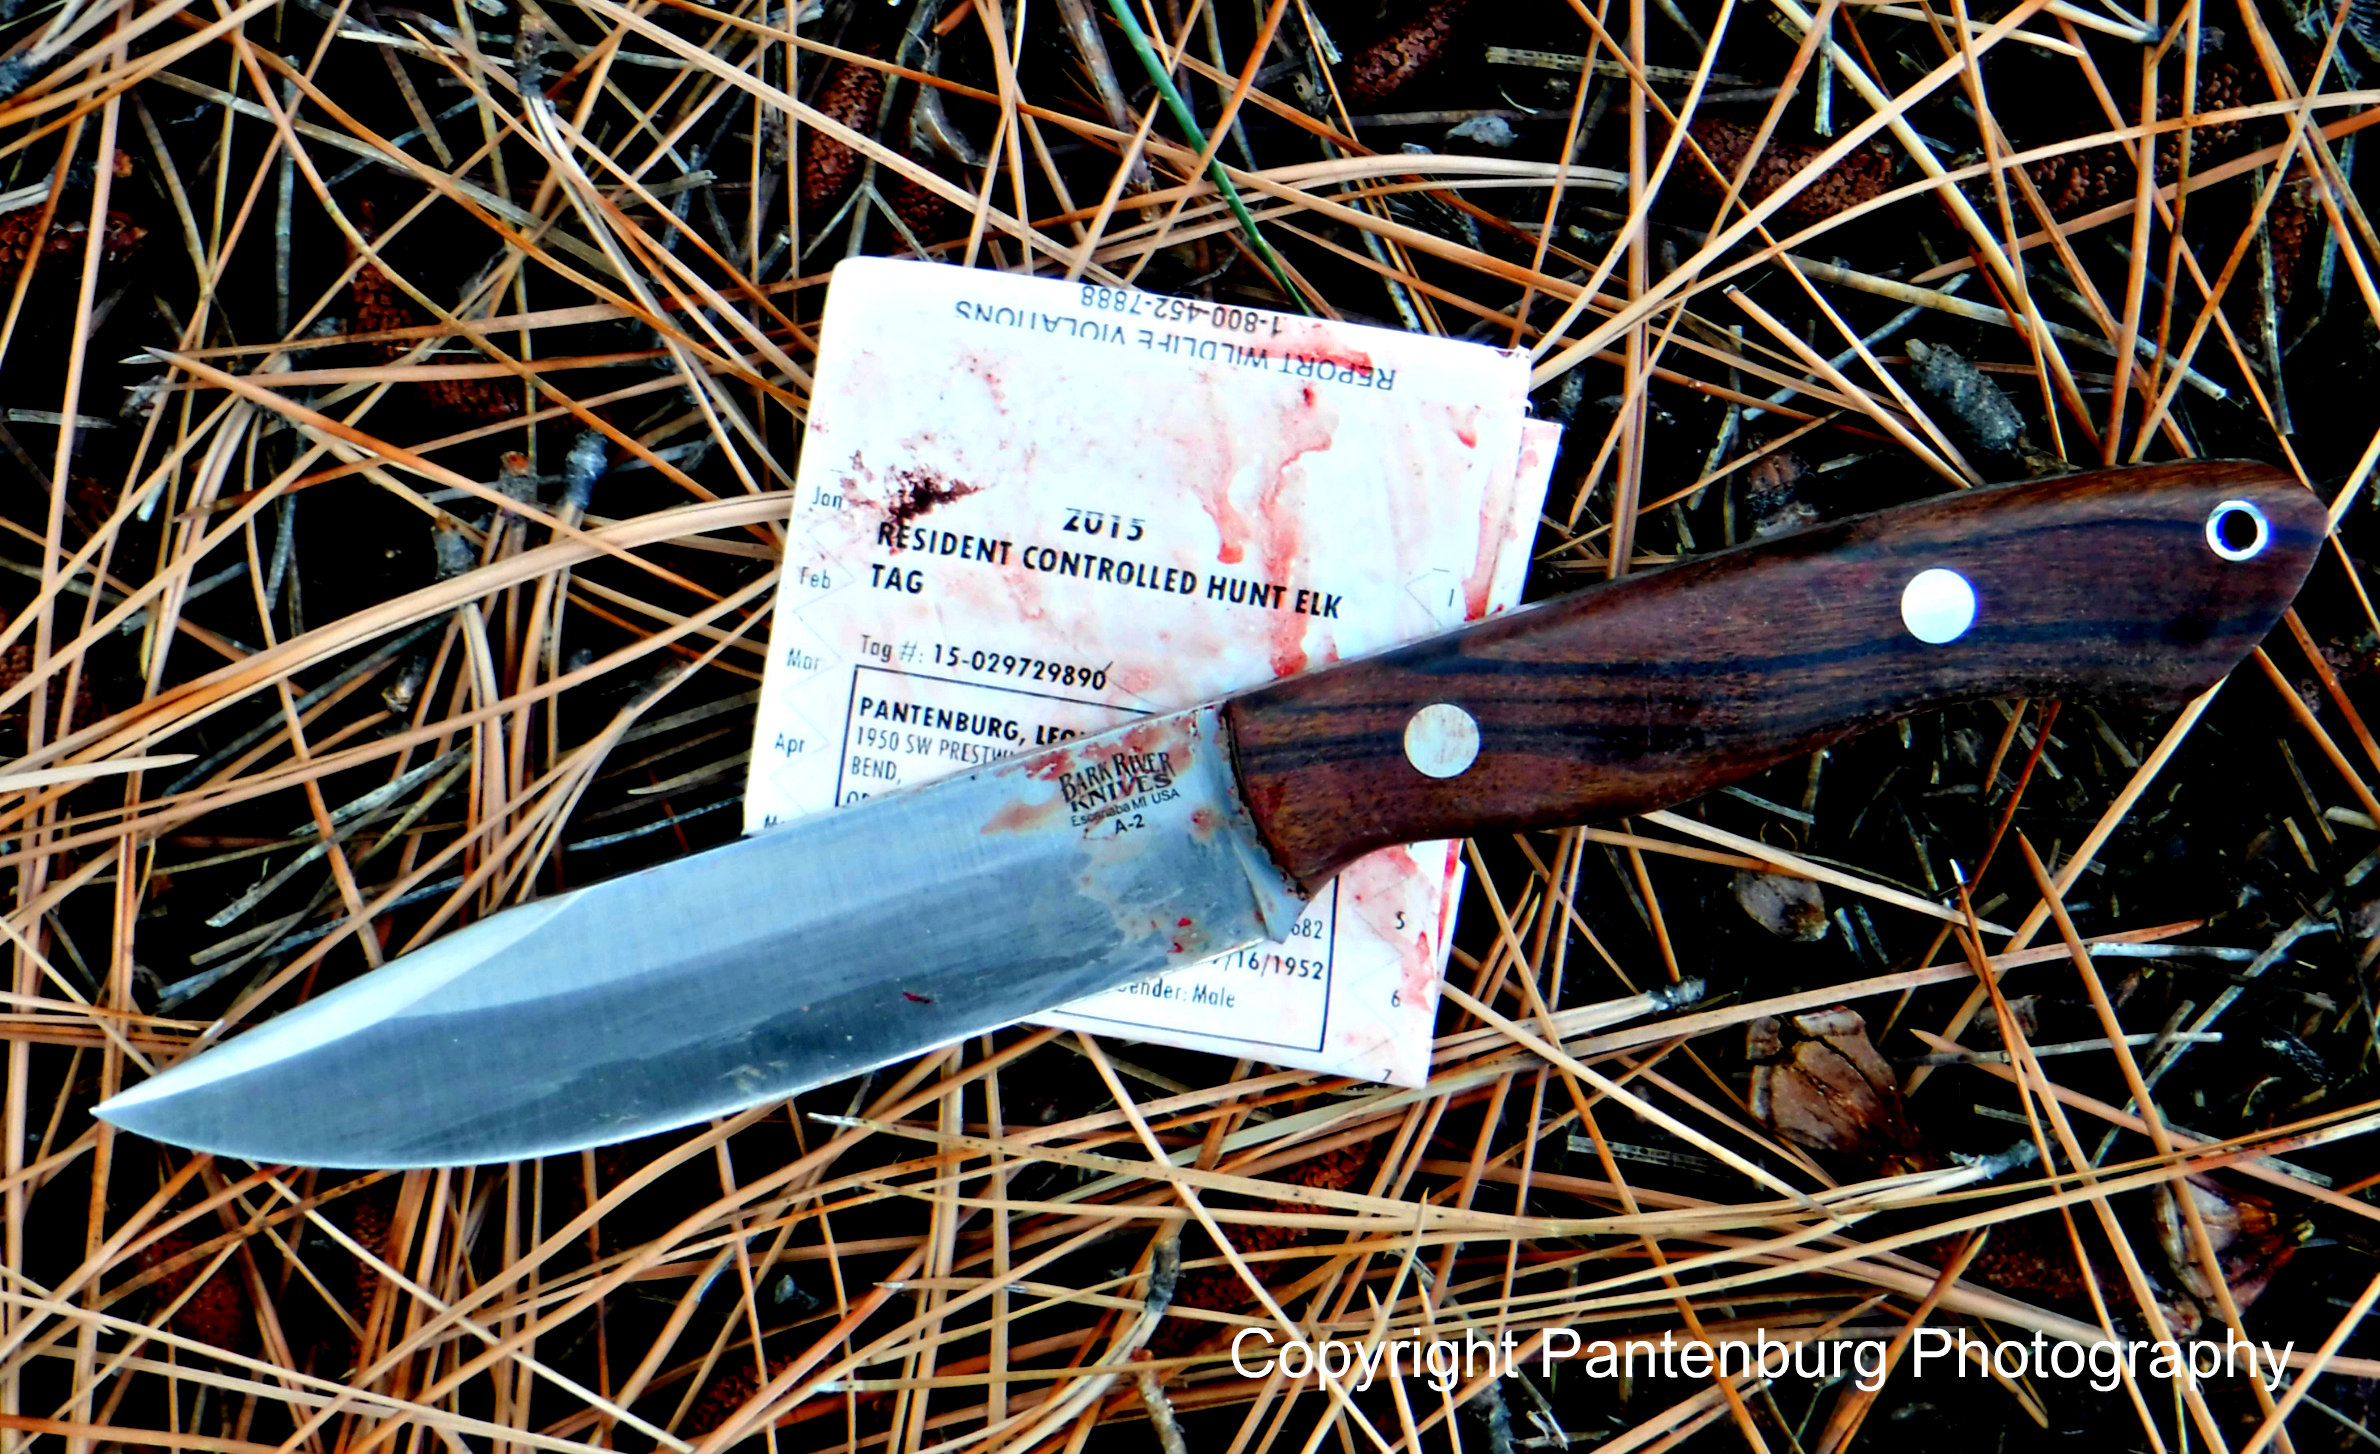 This Bark River Sahara worked really well as a hunting knife.